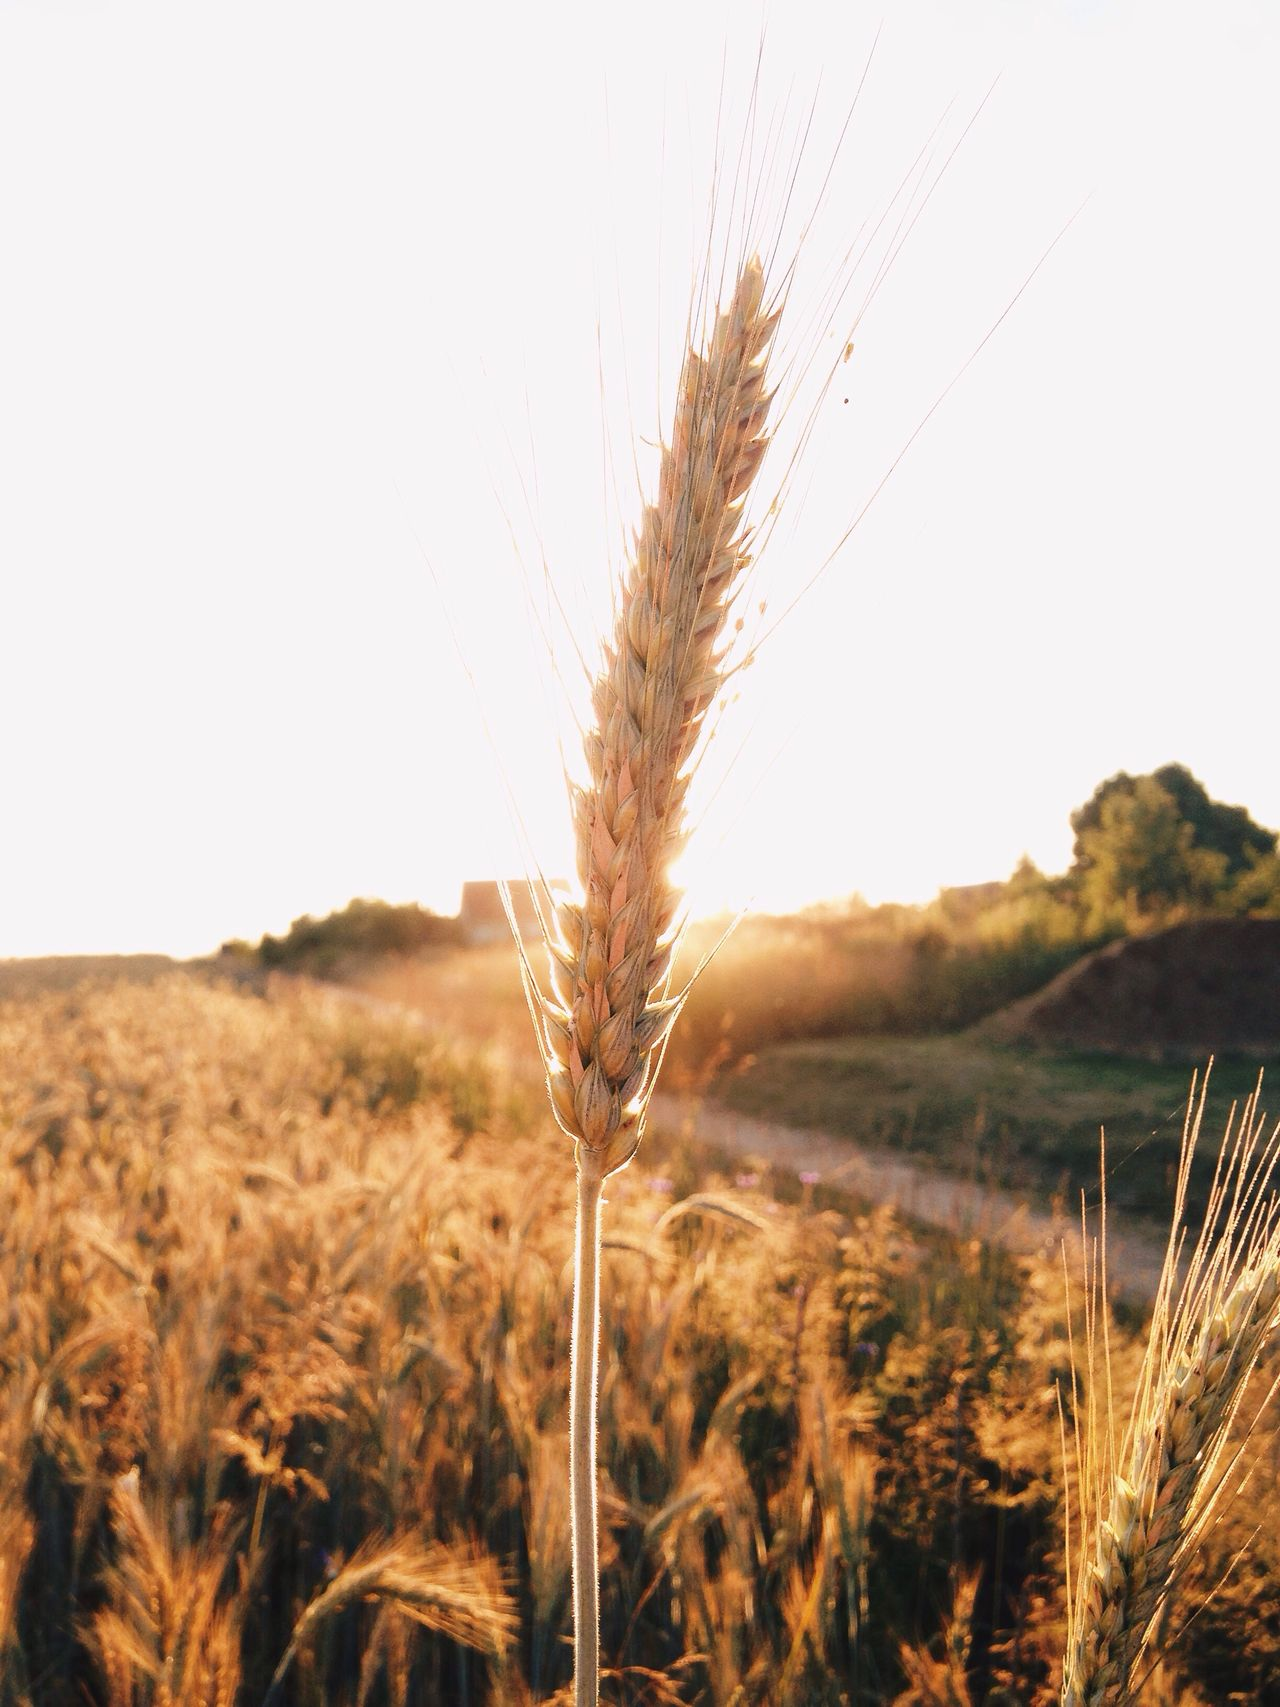 Golden hour in the field Cereal Plant Field Agriculture Wheat Farm Rural Scene Close-up Corn Golden Hour Nature Backgrounds Sunset Sunset_collection Best EyeEm Shot Light